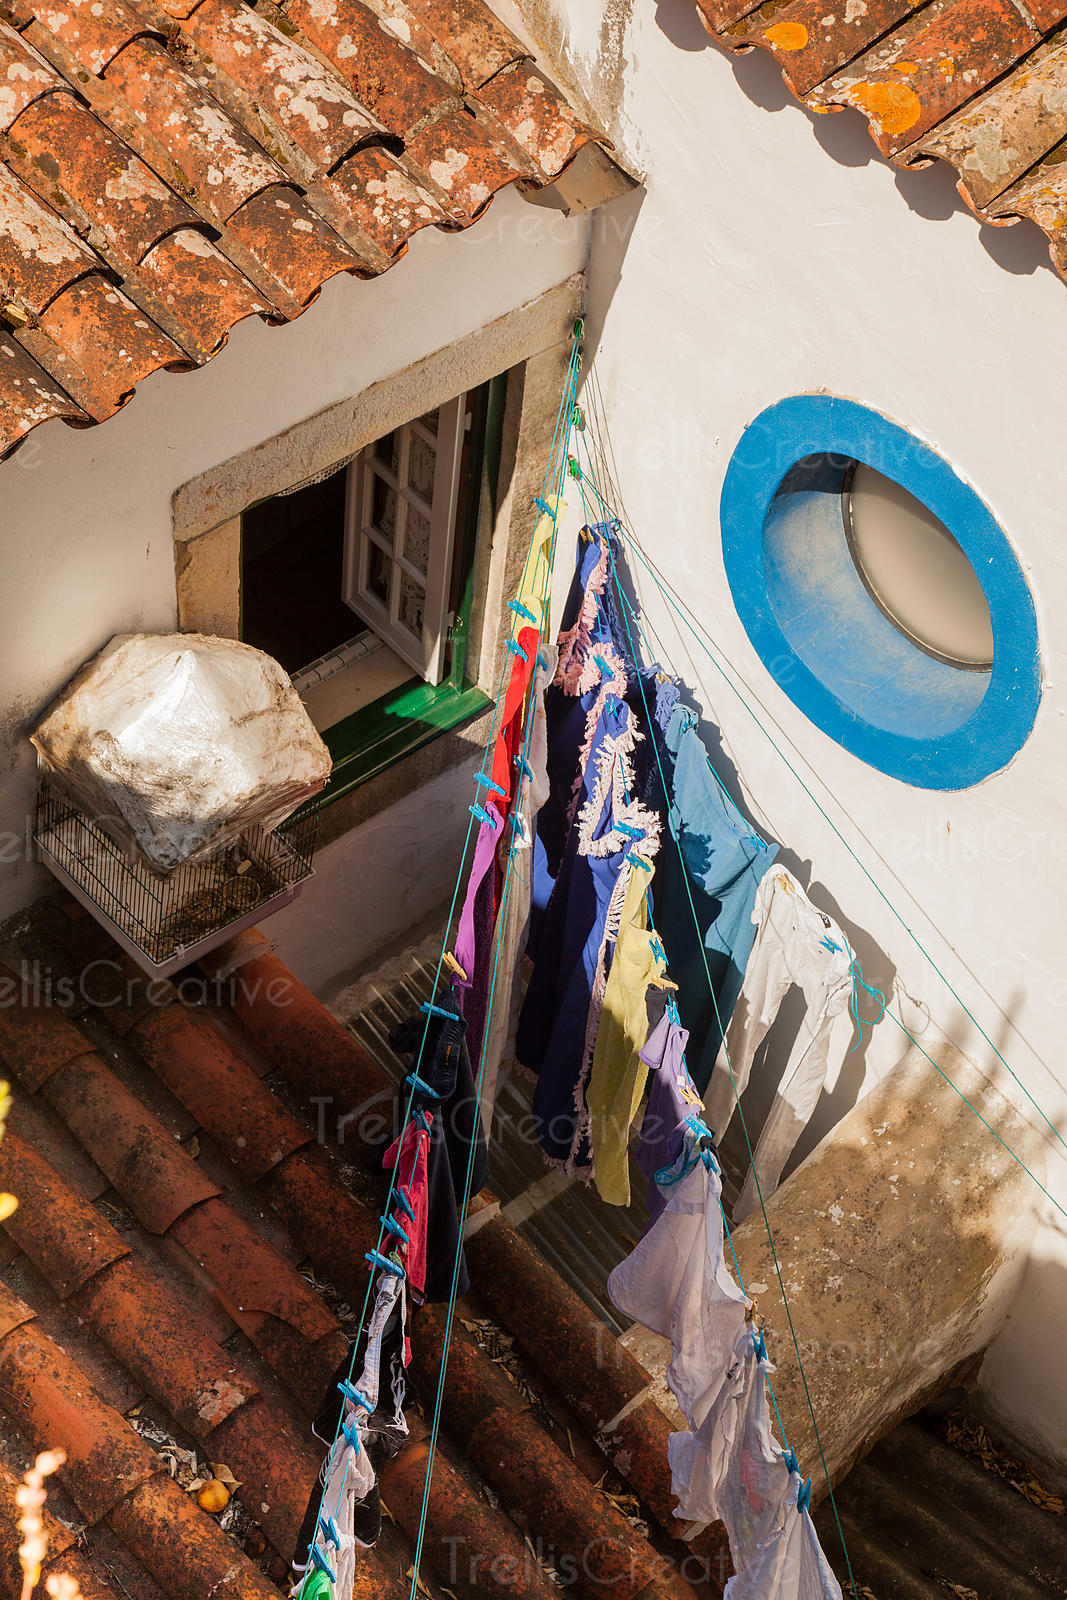 Colorful laundry hangs on a clothesline outside in the sun to dry.